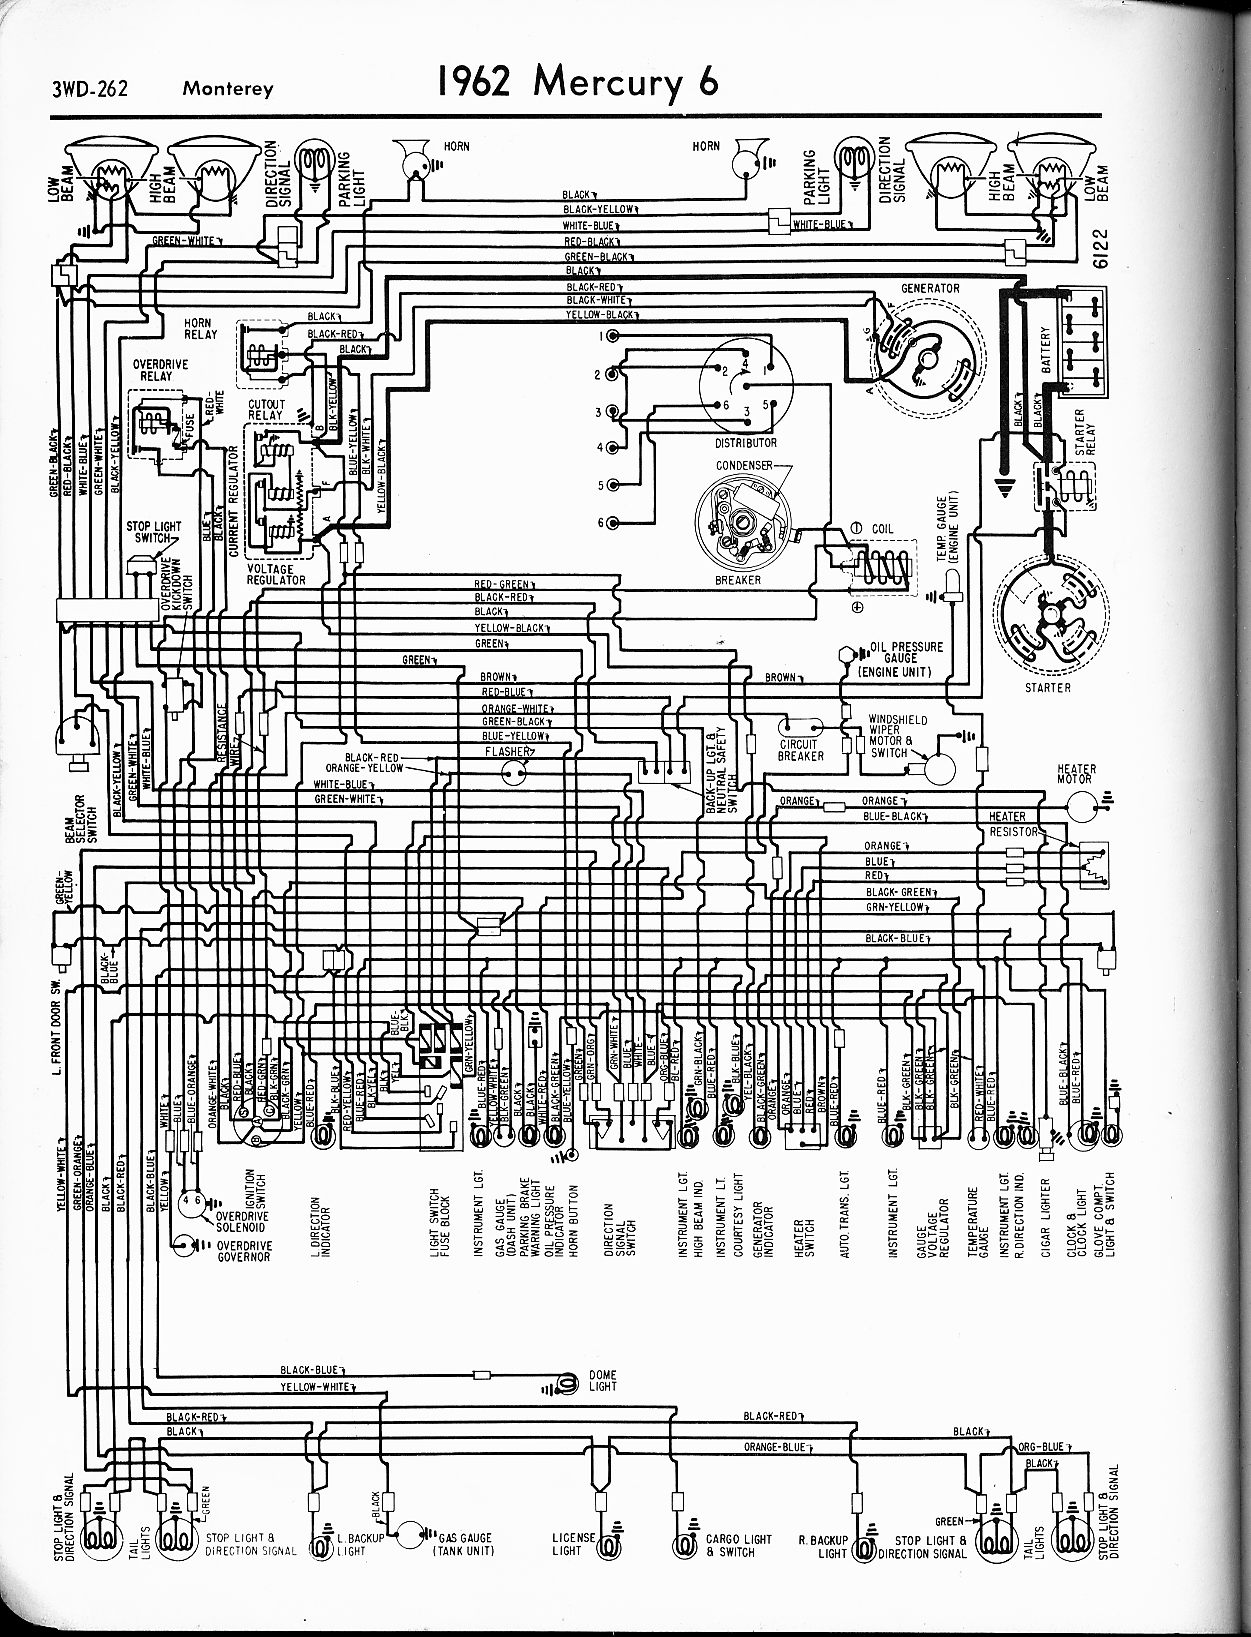 1956 Mercury Fuse Box Diagram Wiring Schematics Saturn Vue 2003 Diagrams The Old Car Manual Project